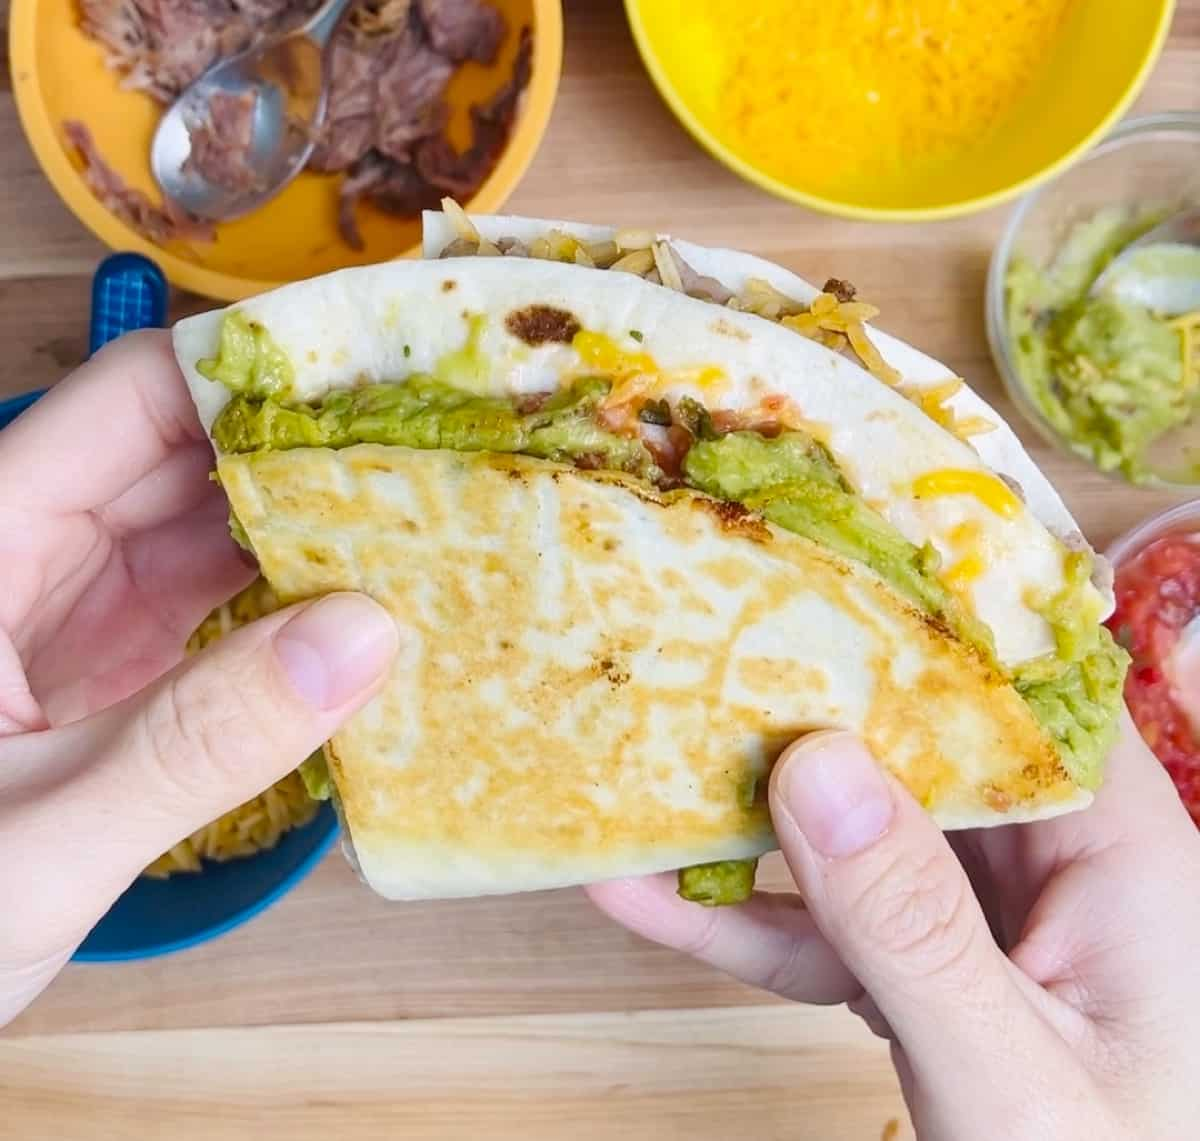 Tiktok Tortilla Wrap Hack